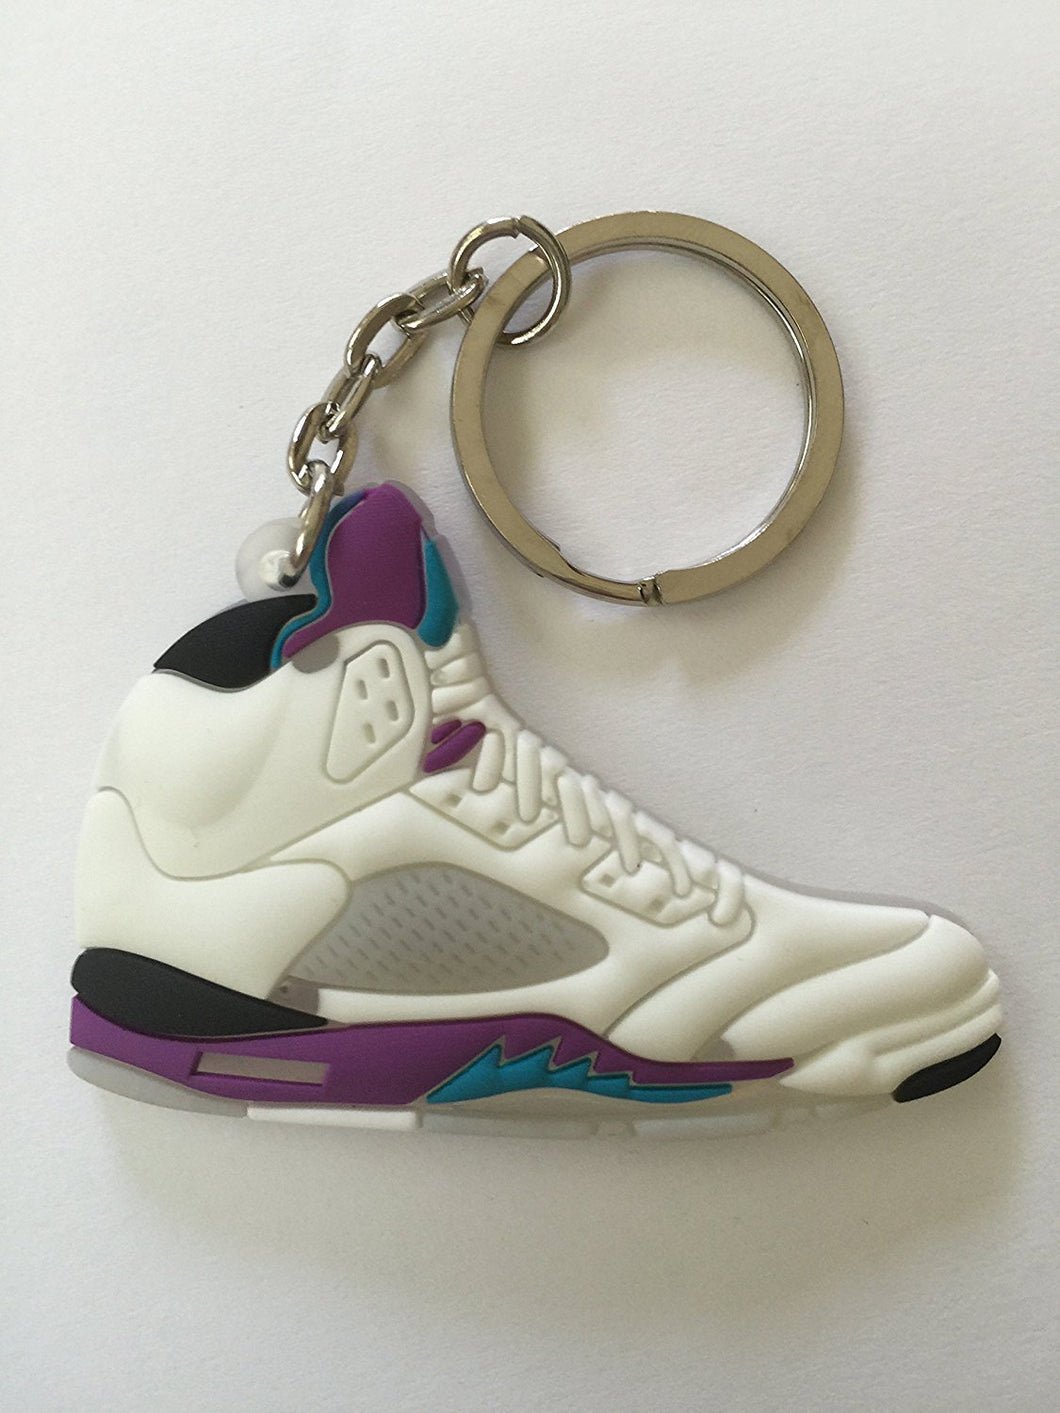 Air Jordan 5 White Grapes Sneakers Shoes Keychain Keyring